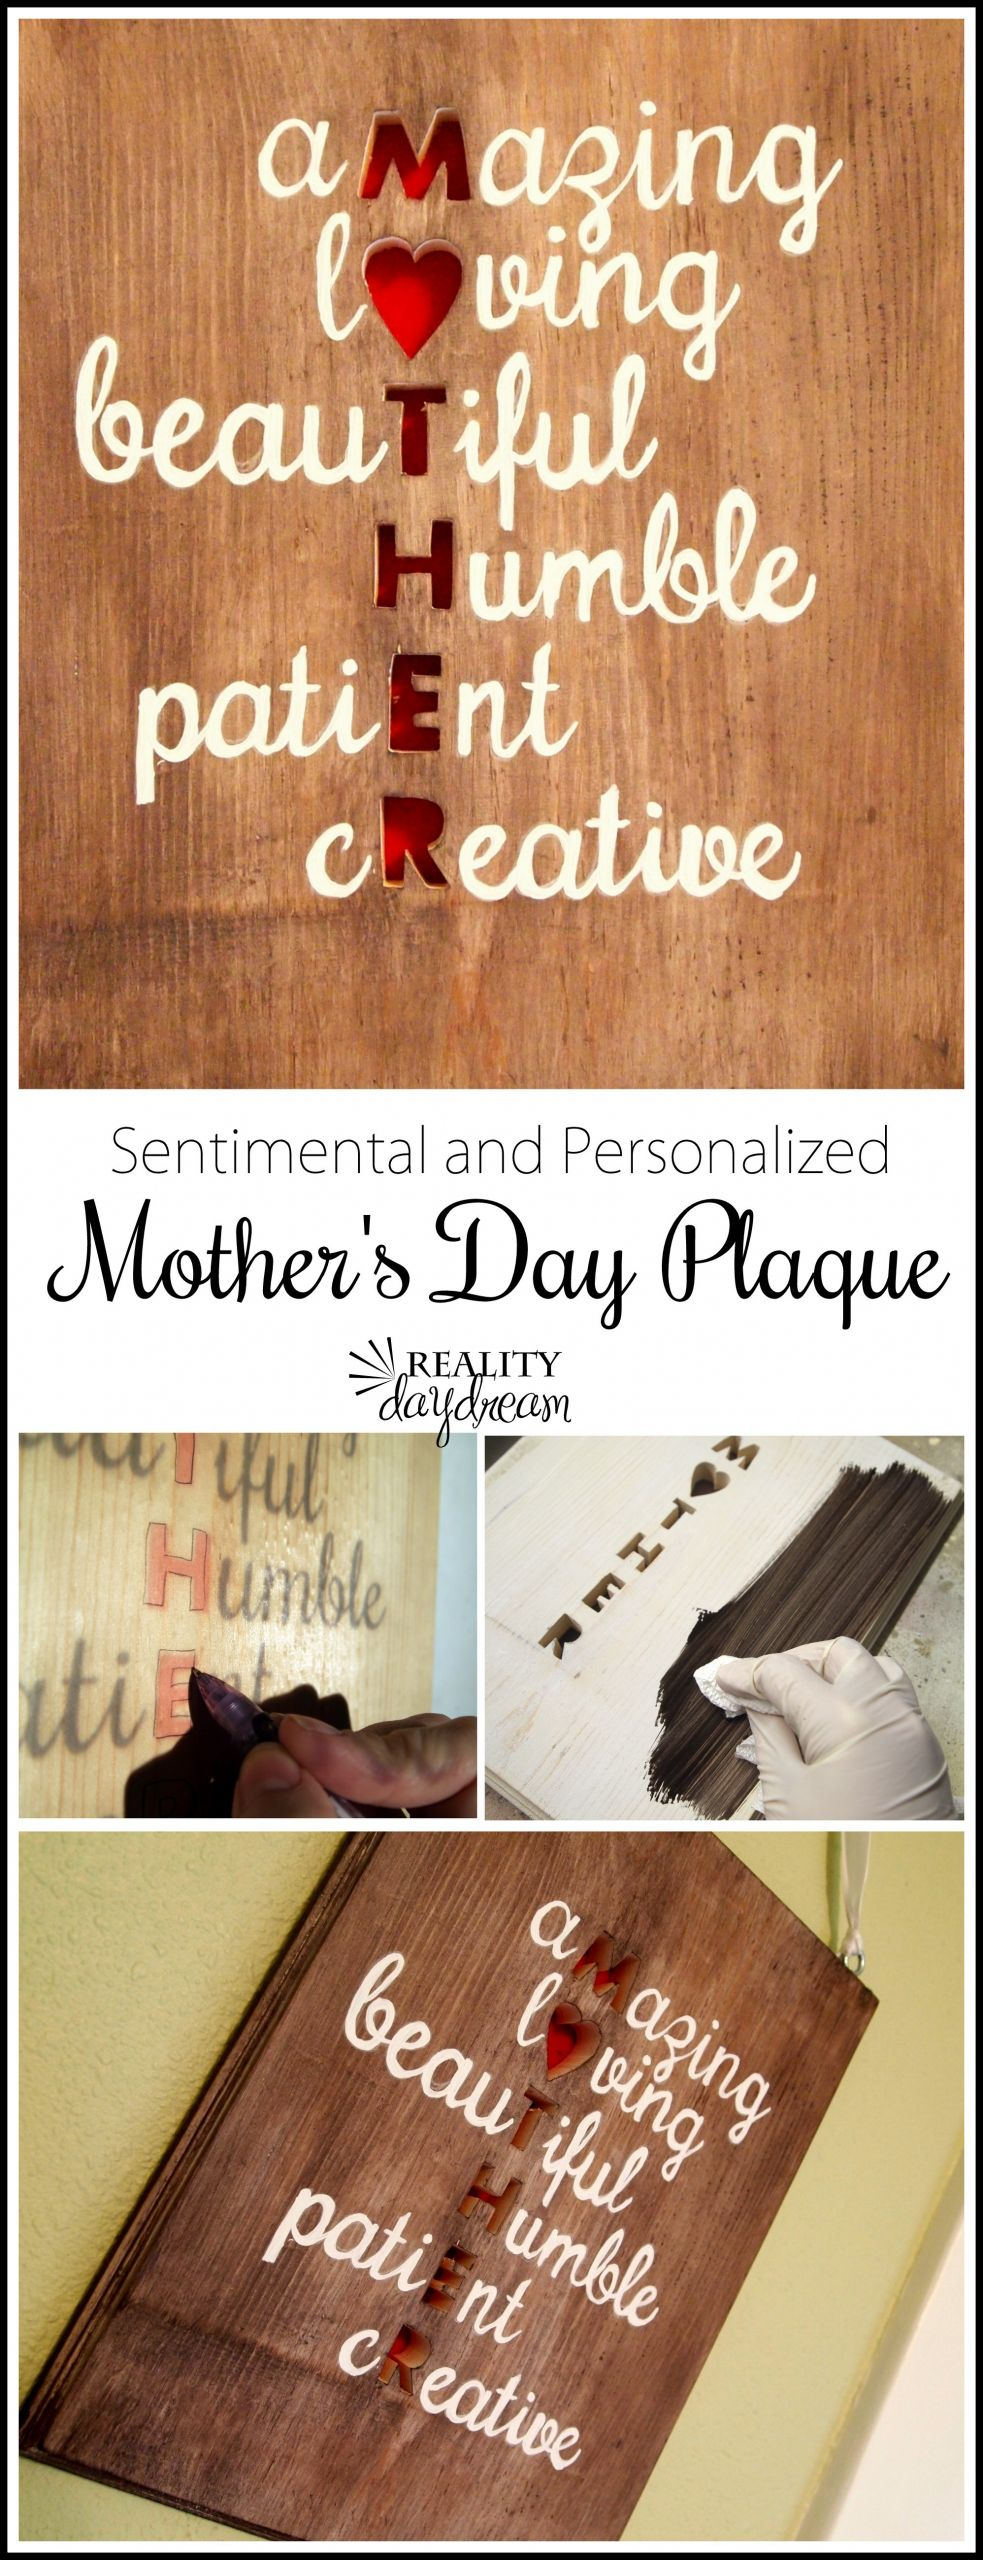 DIY Christmas Gifts For Mom From Daughter  Meaningful Mother's Day Gift Idea Reality Daydream